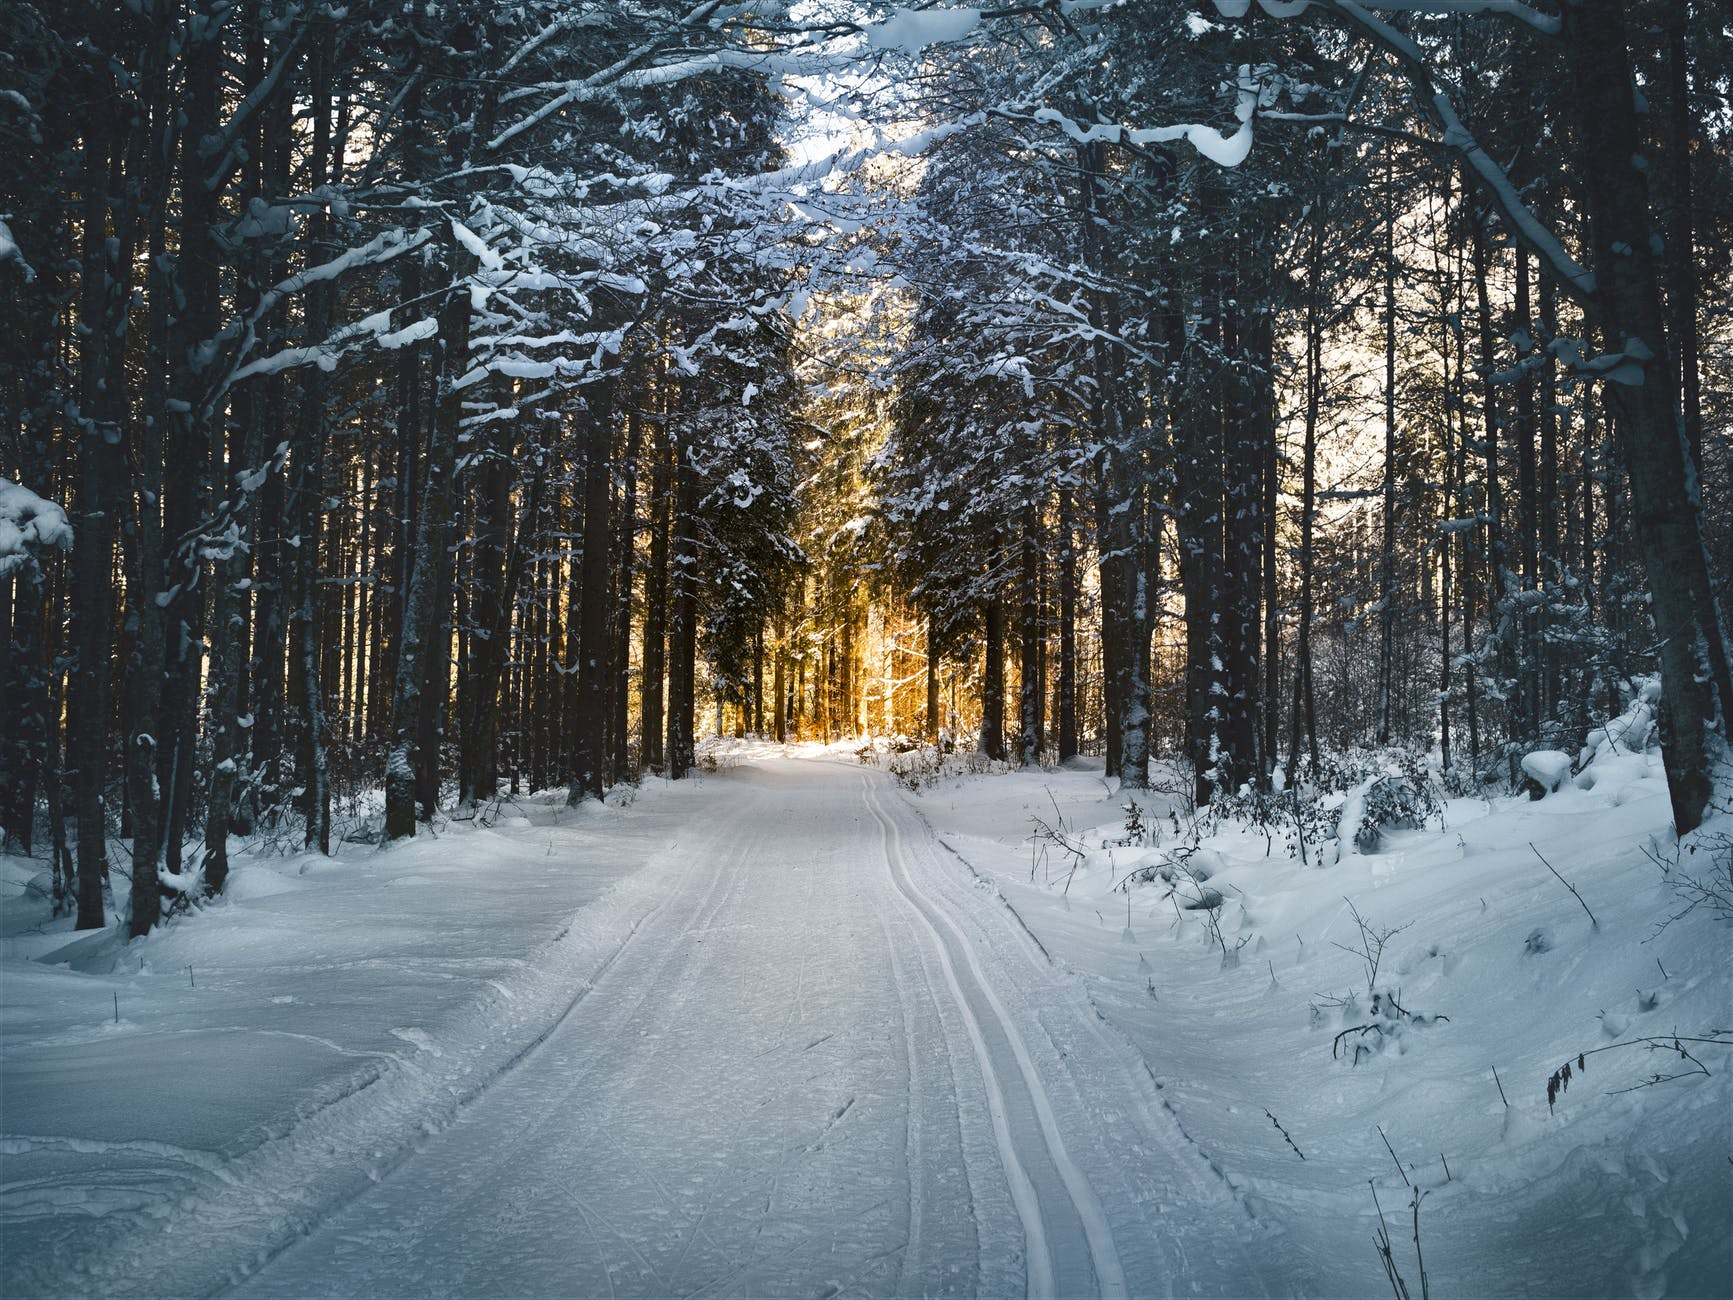 How Does Winter Weather Impact Travel